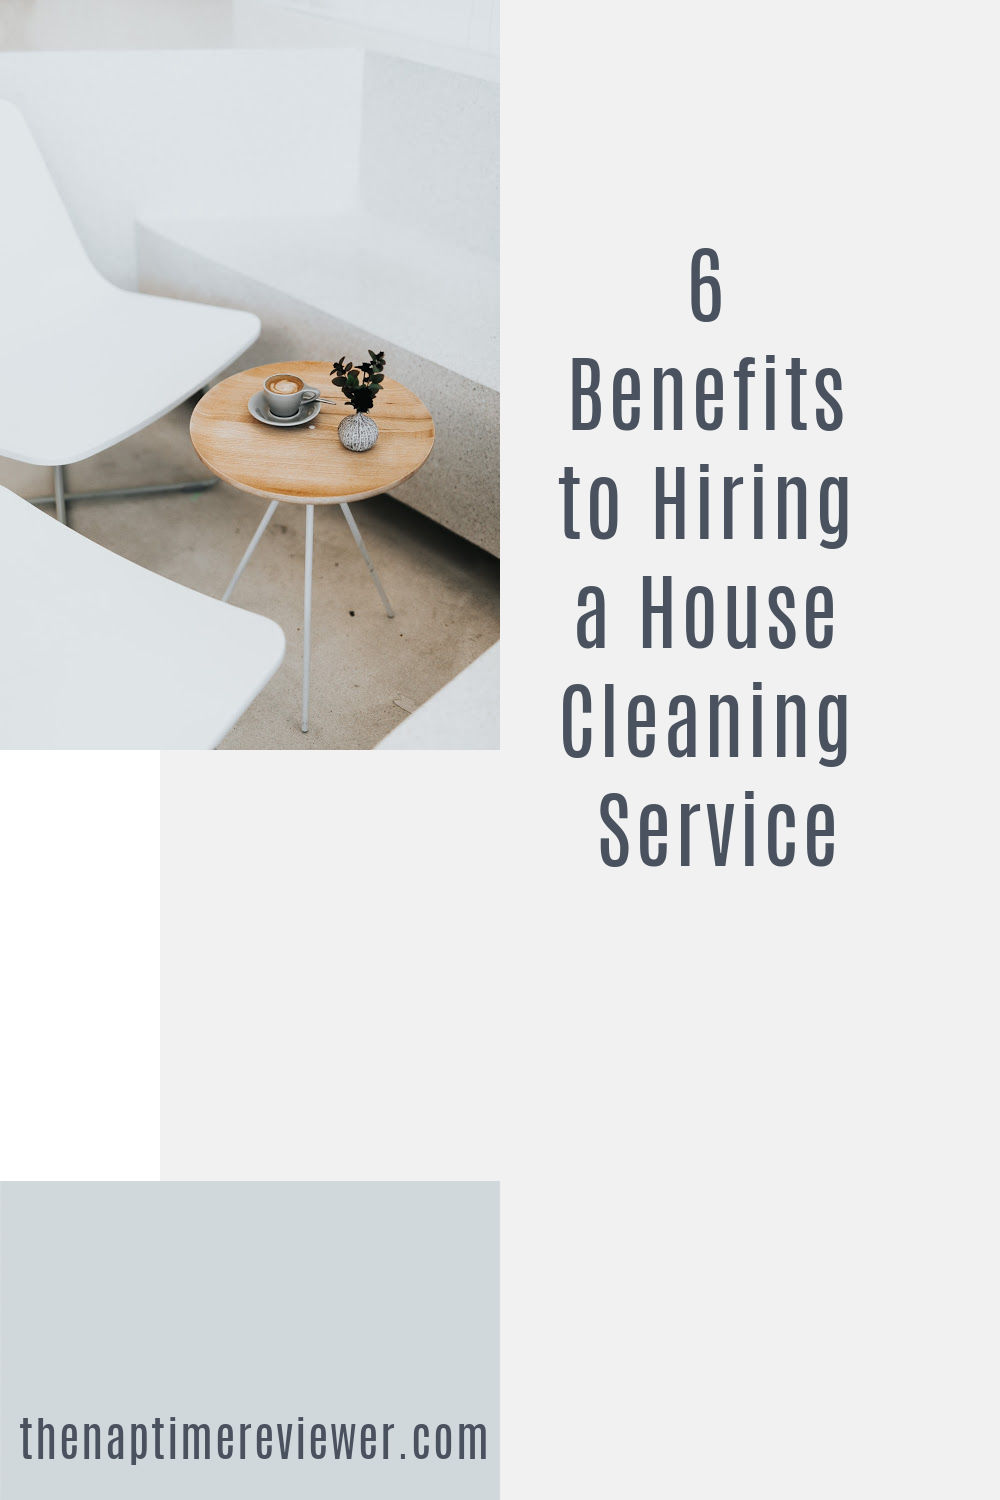 Benefits of hiring a cleaning service